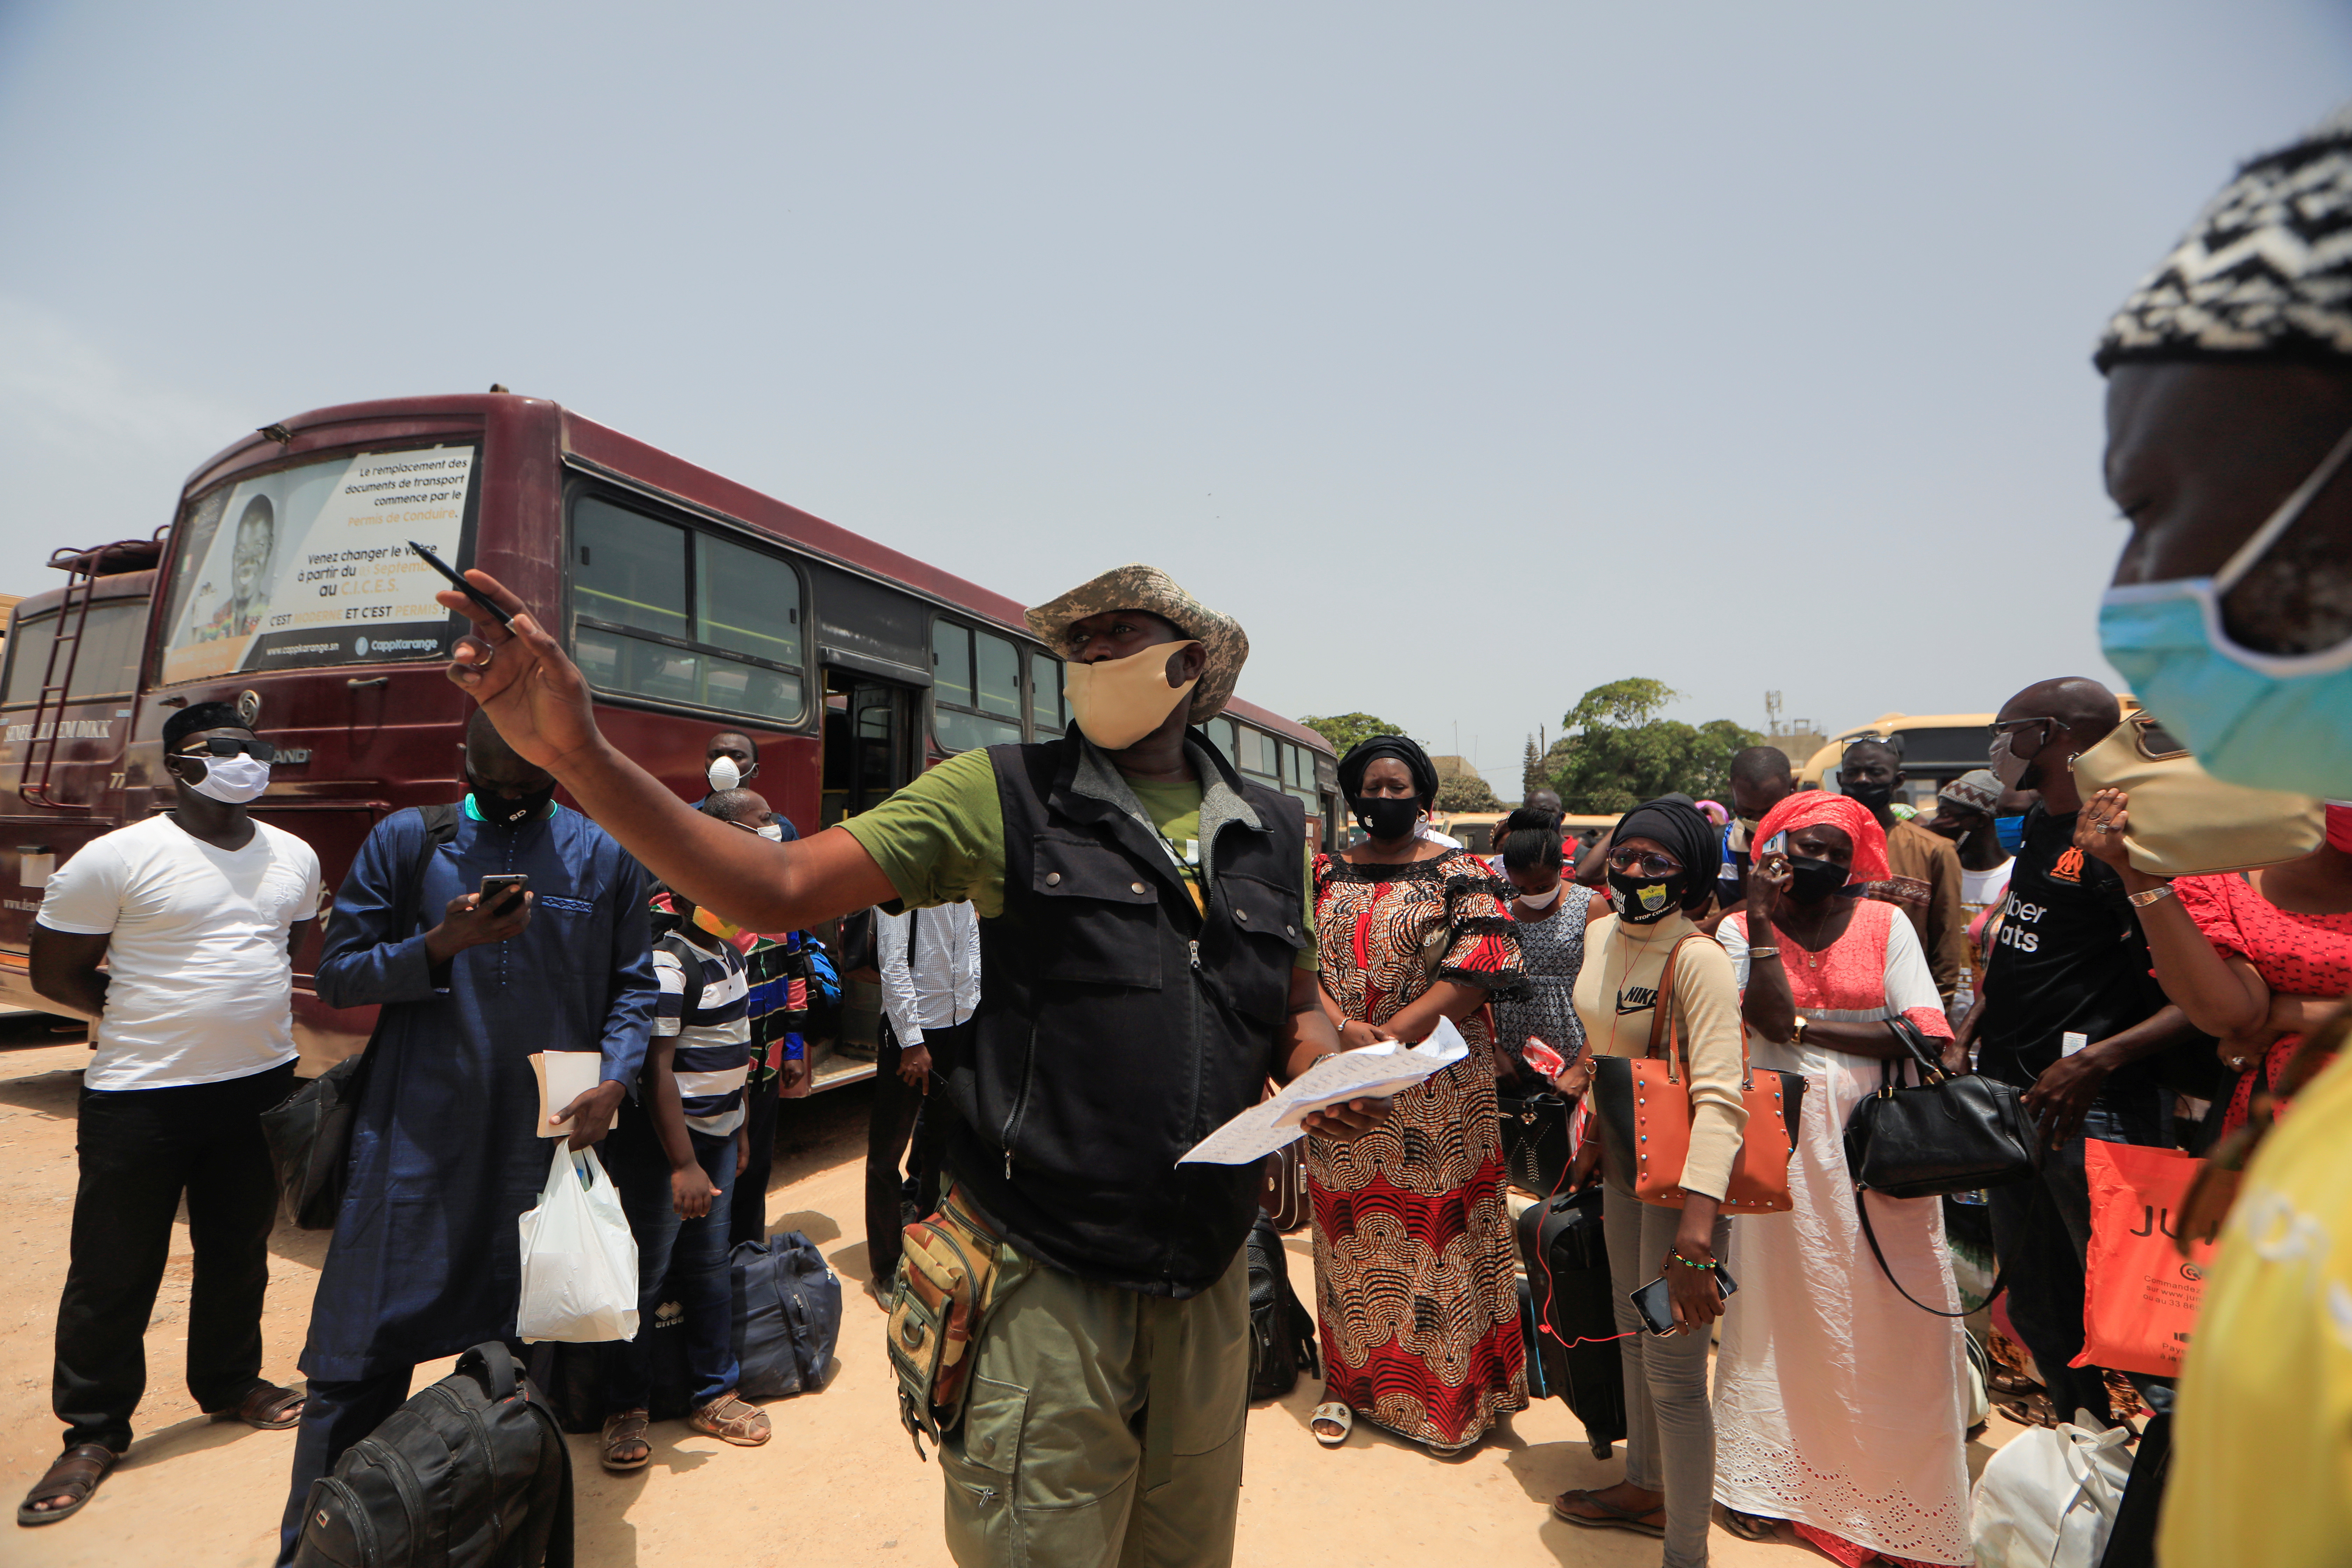 Senegalese teachers wait to board government-chartered buses taking them to rural schools.